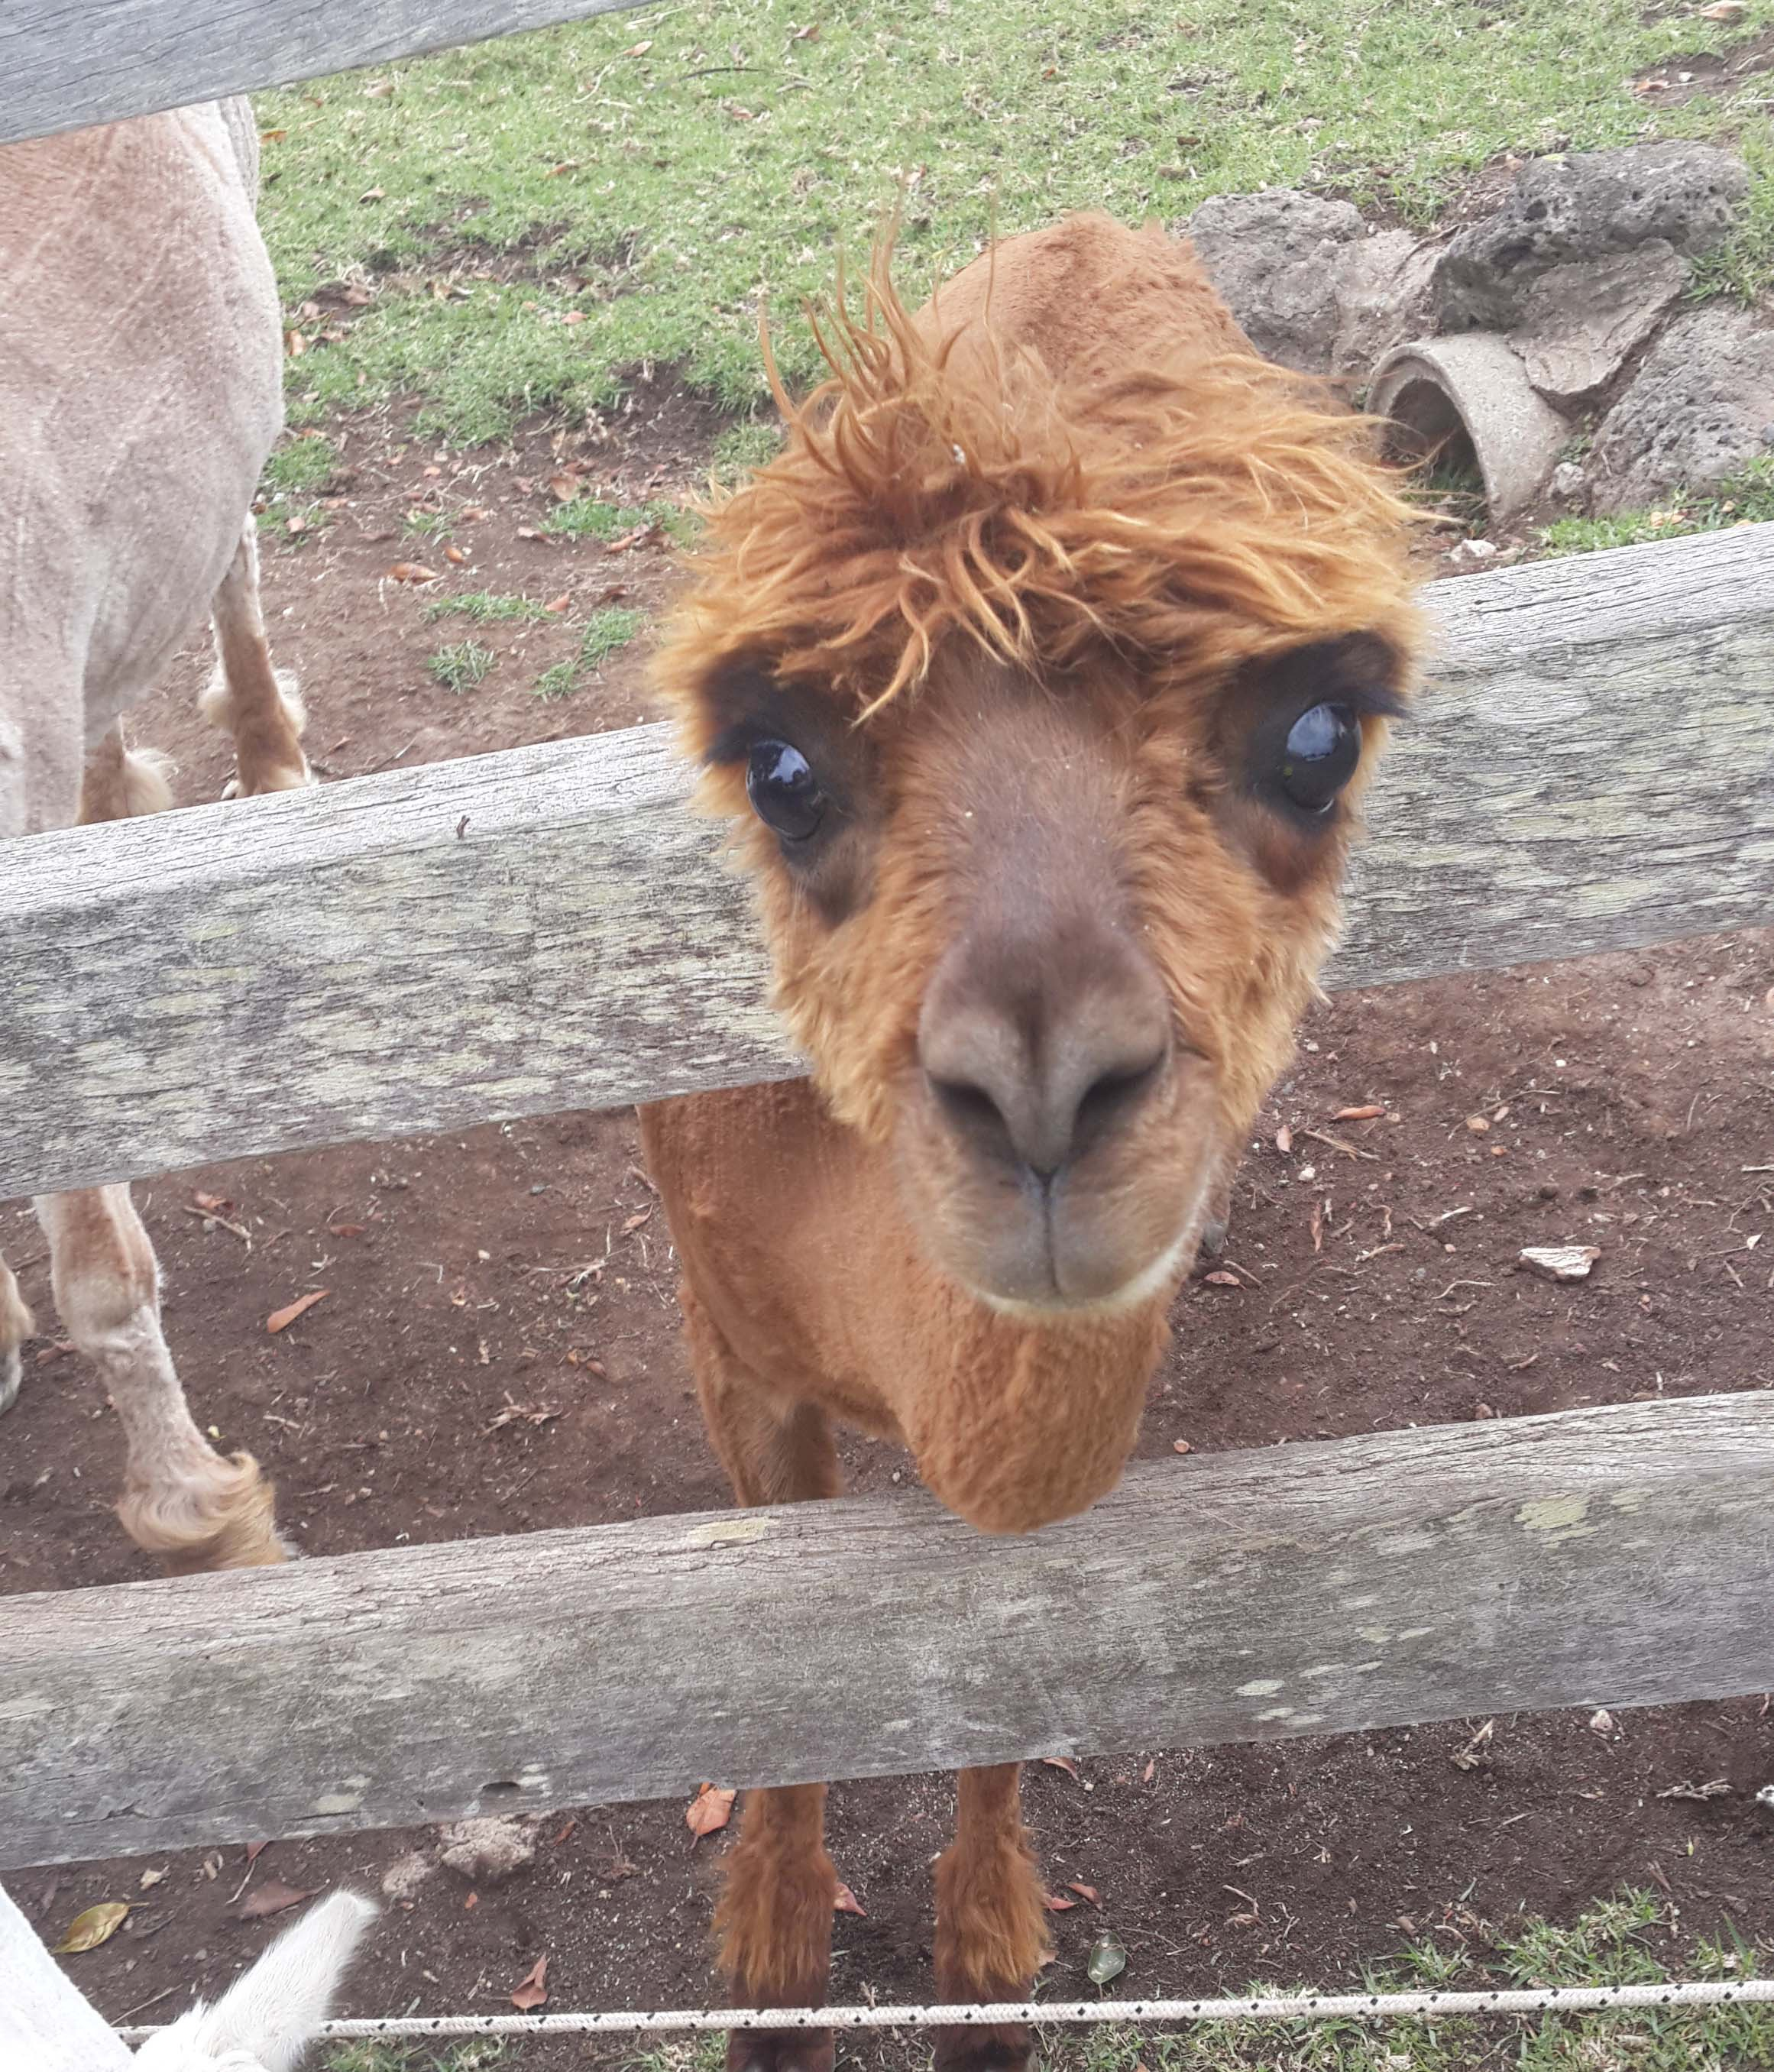 Mountview alpaca farm brisbane by amber flynn for Alpaca view farm cuisine